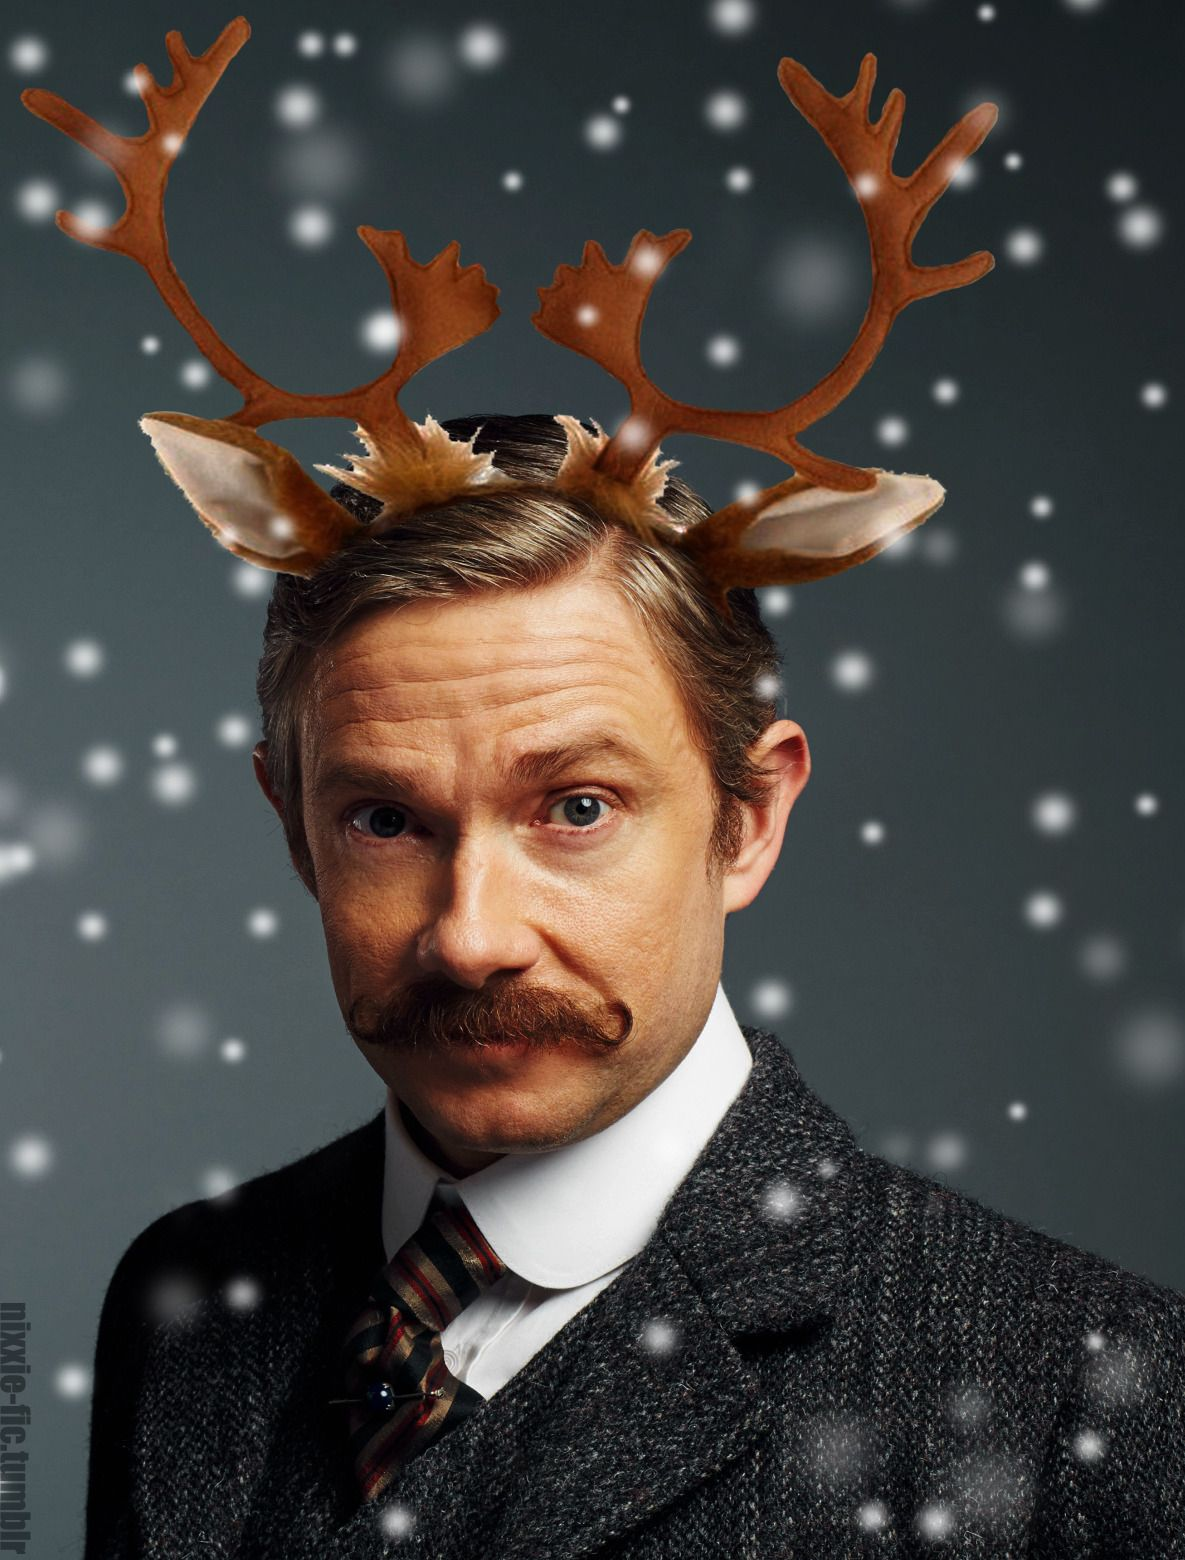 """""""I wish you could have worn the antlers"""""""